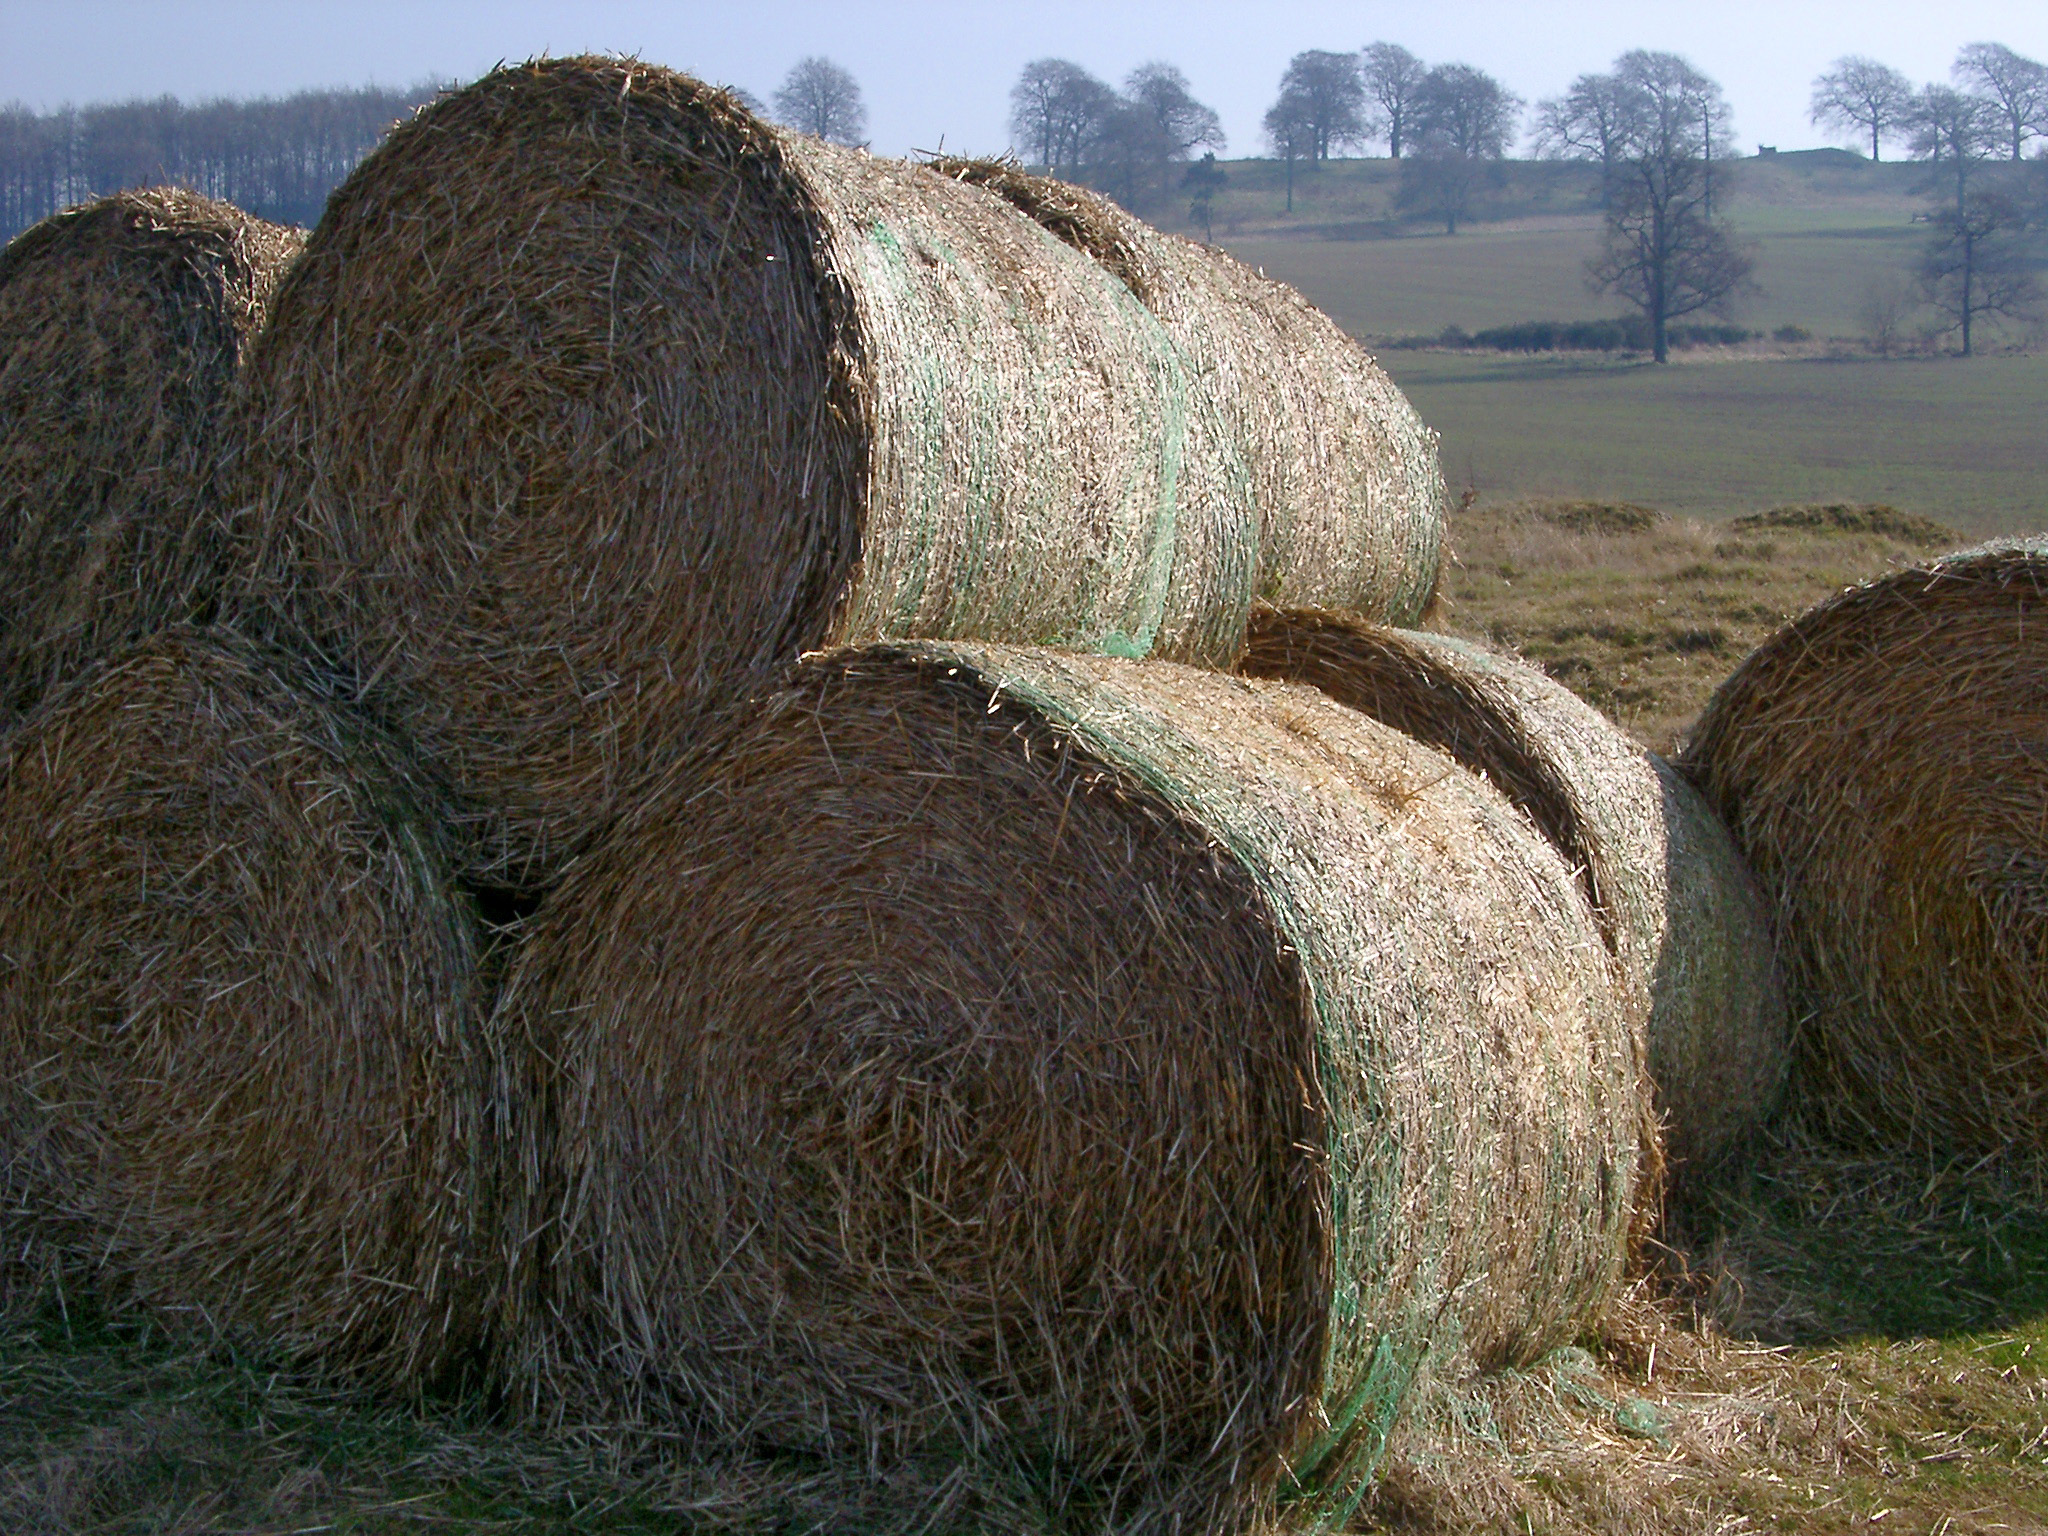 Round hay bales for winter livestock feed stacked in an agricultural field in the sunshine